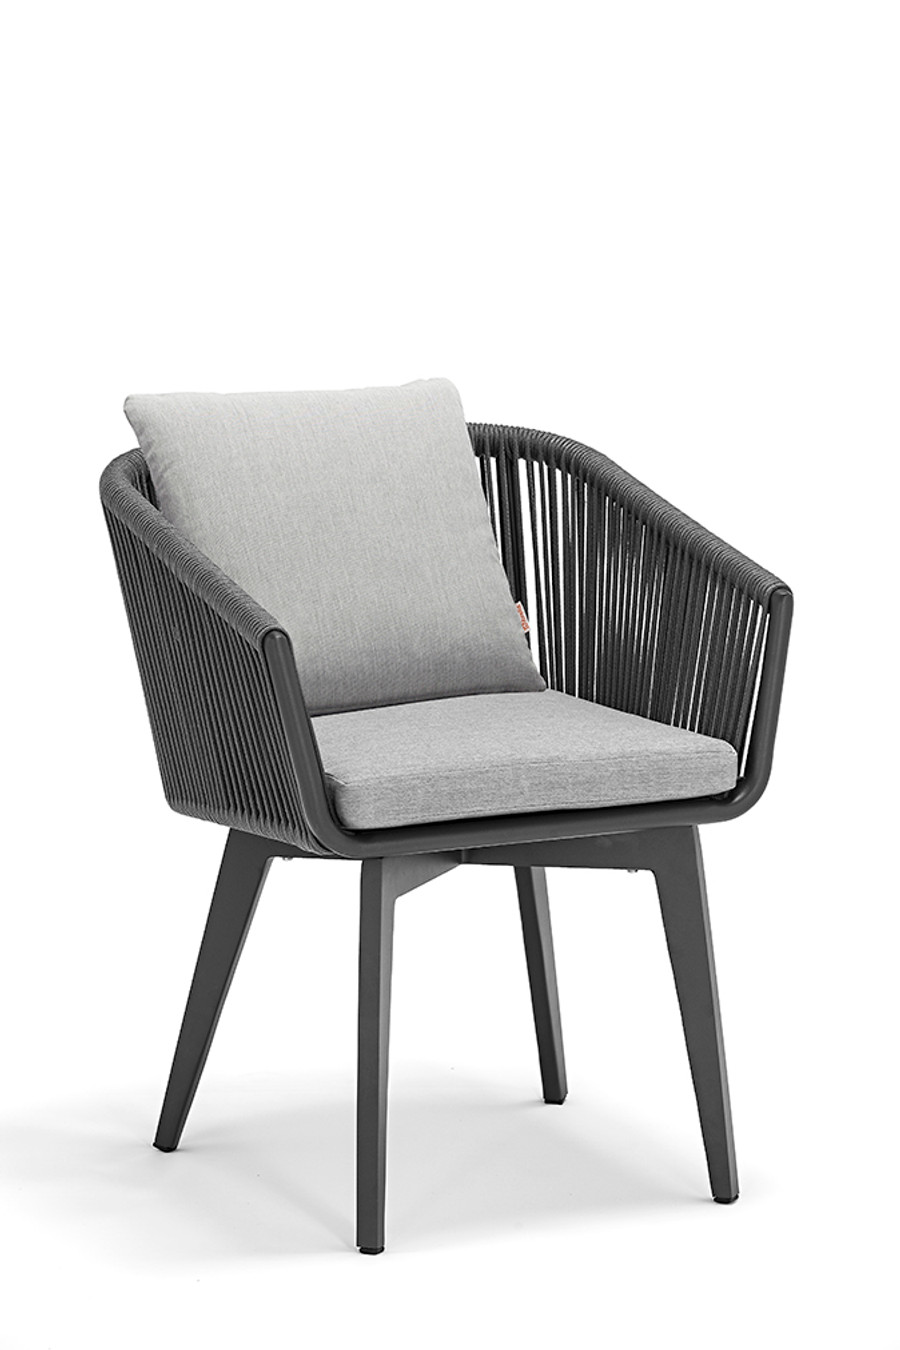 Diva outdoor dining arm chair with aluminium frame, rope and sunbrella cushions